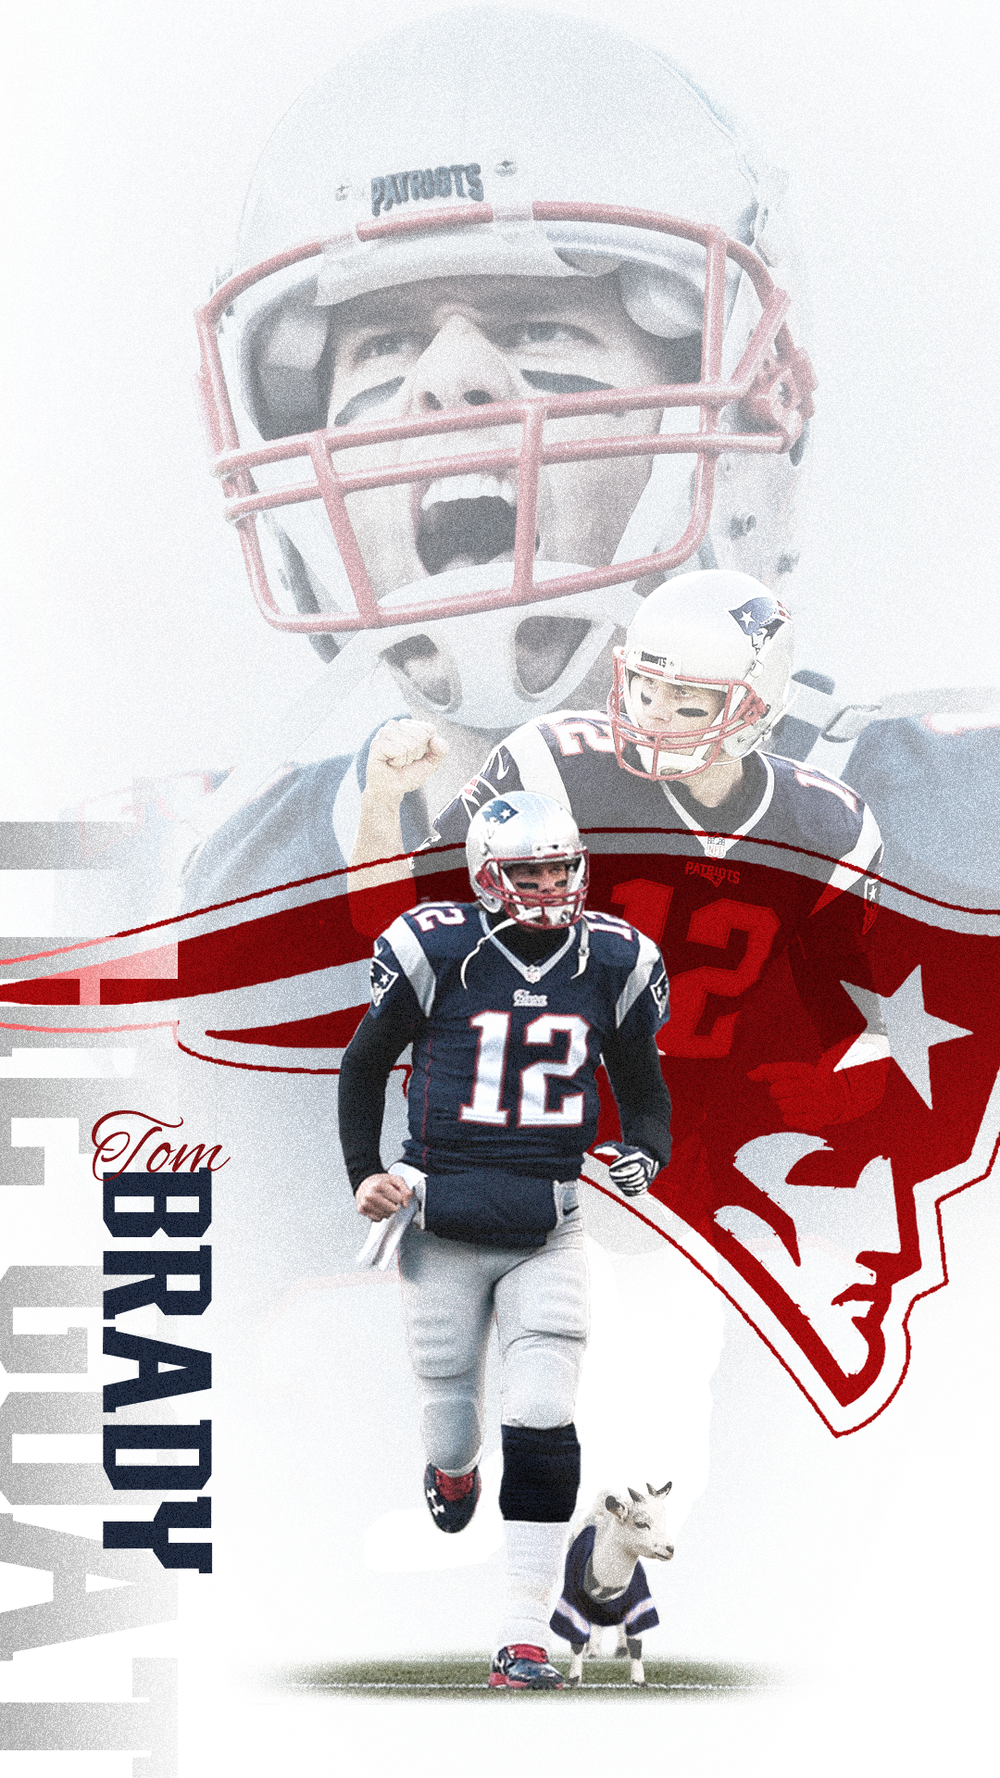 Wallpaper7_TomBrady.png